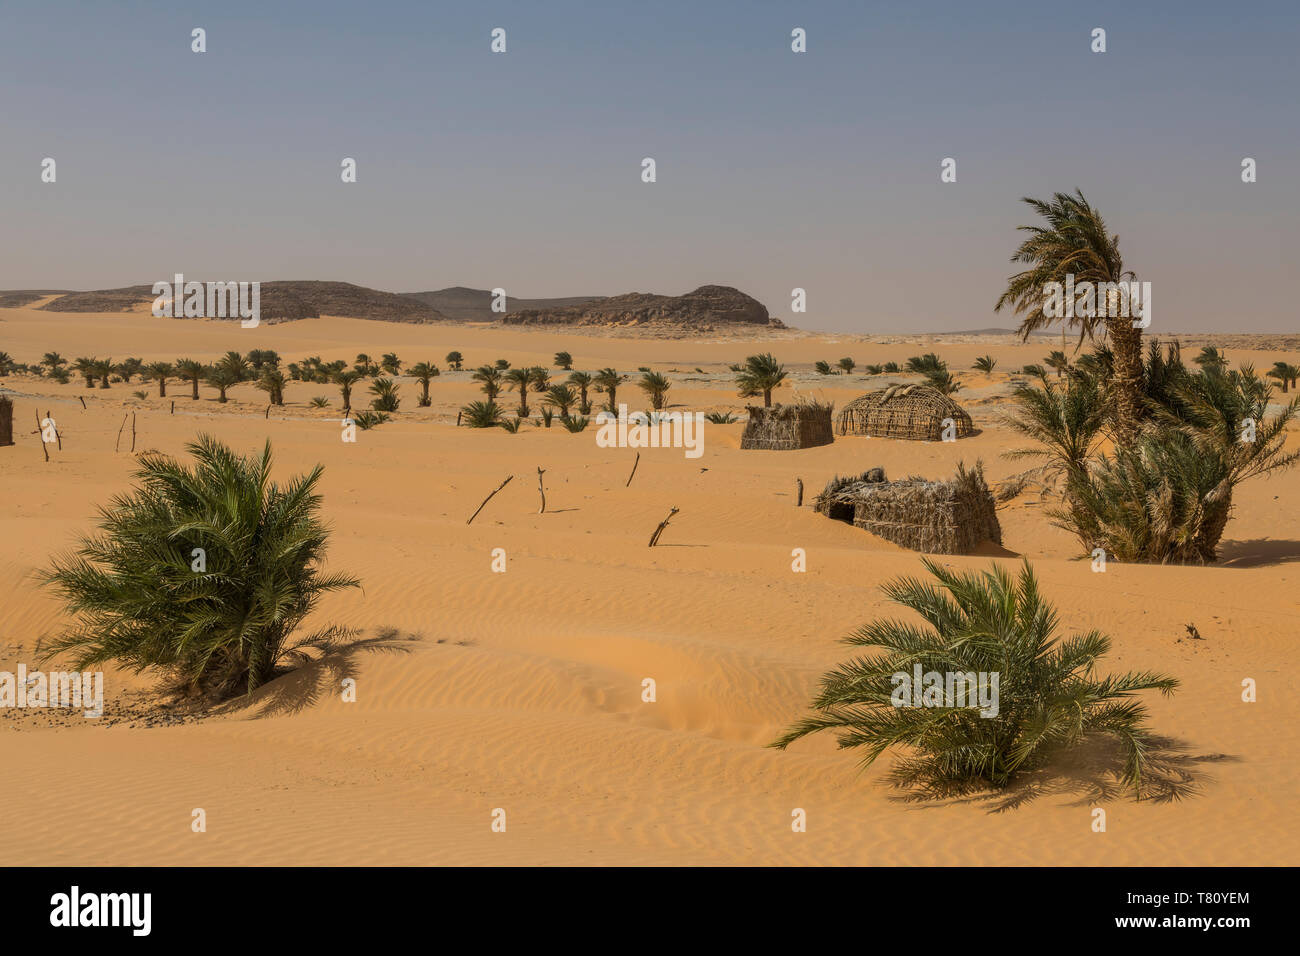 Little village in the desert between Ounianga Kebir and Faya, northern Chad, Africa - Stock Image